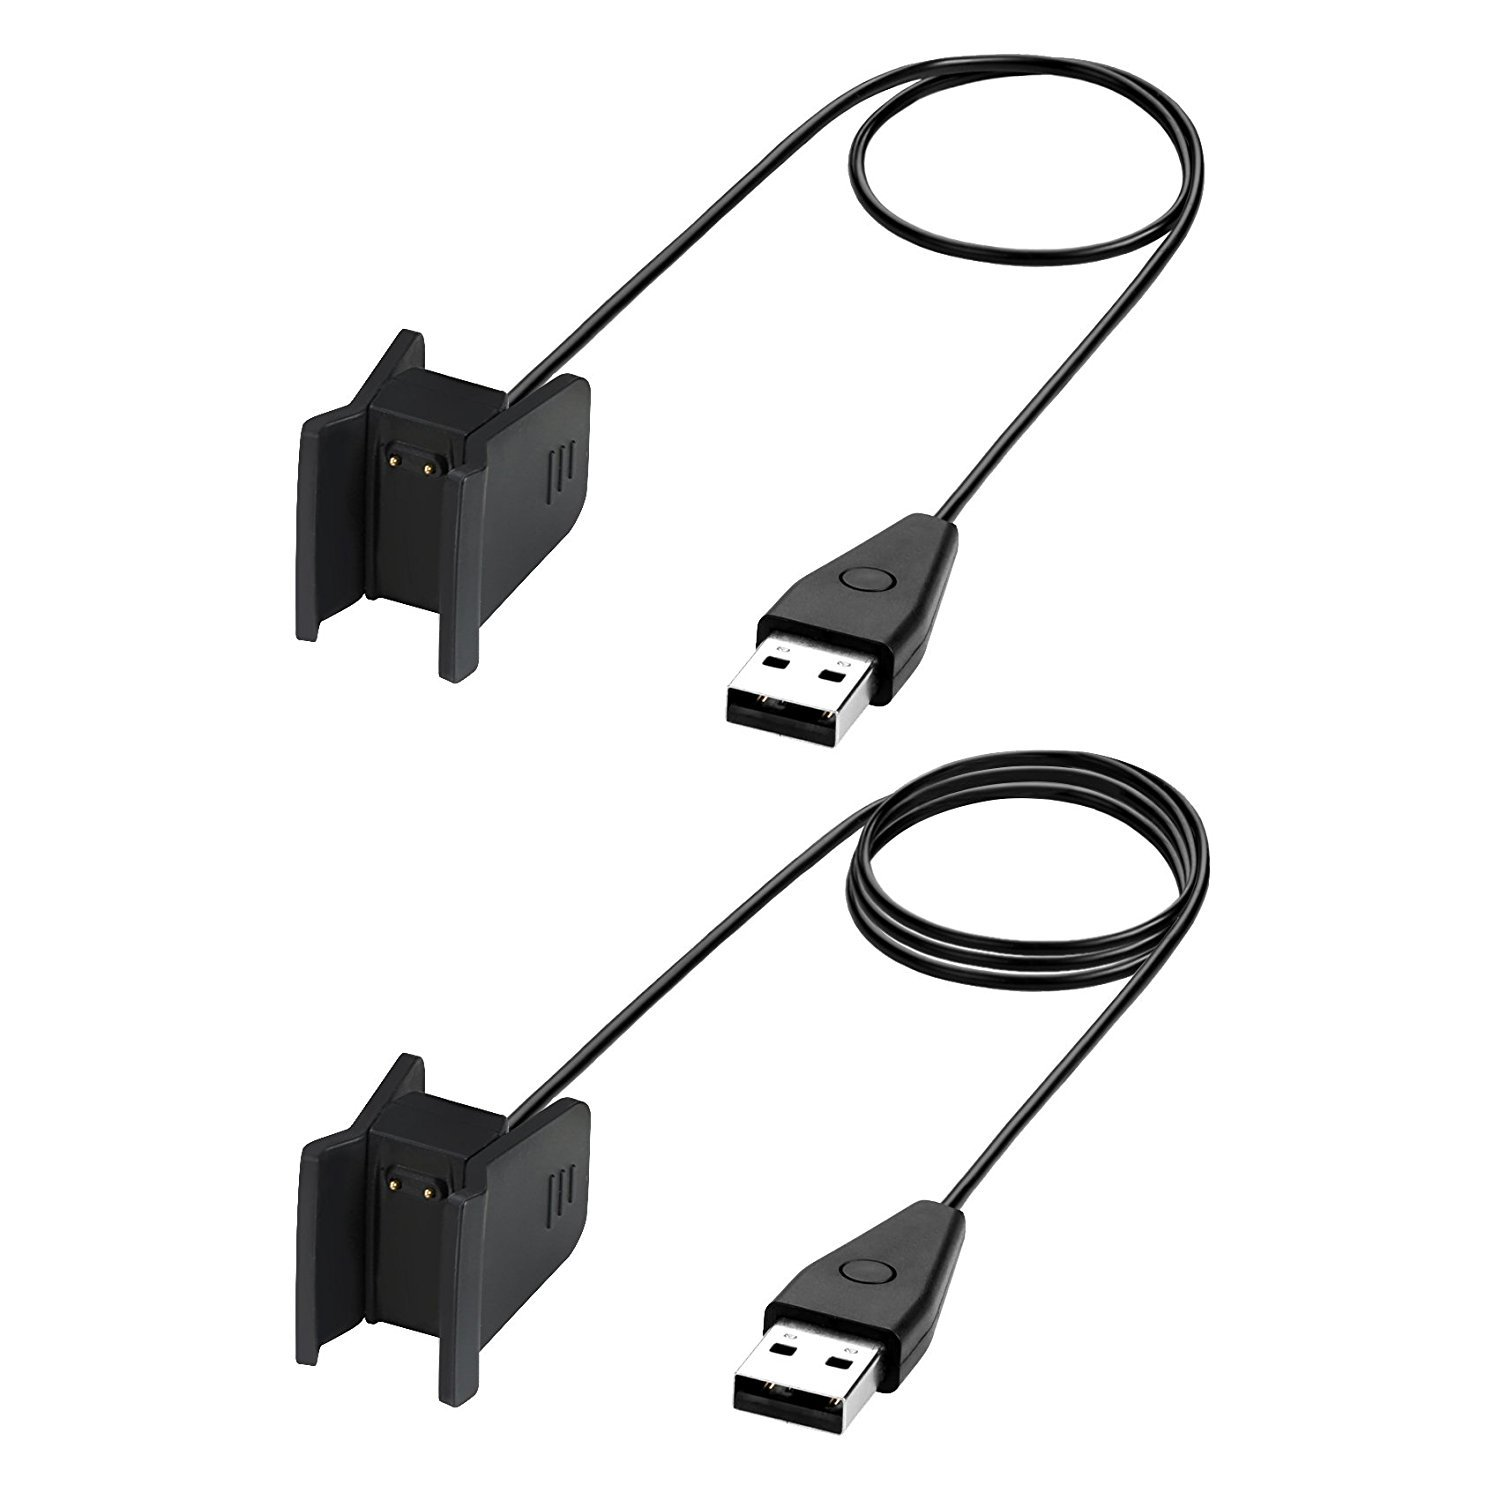 Fitbit Alta HR Charger with Reset Button, BeneStellar 2-Pack 3.3ft/1m or 1.8ft/55cm Replacement Charging Cable Cradle Dock Adapter for Fitbit Alta HR ...